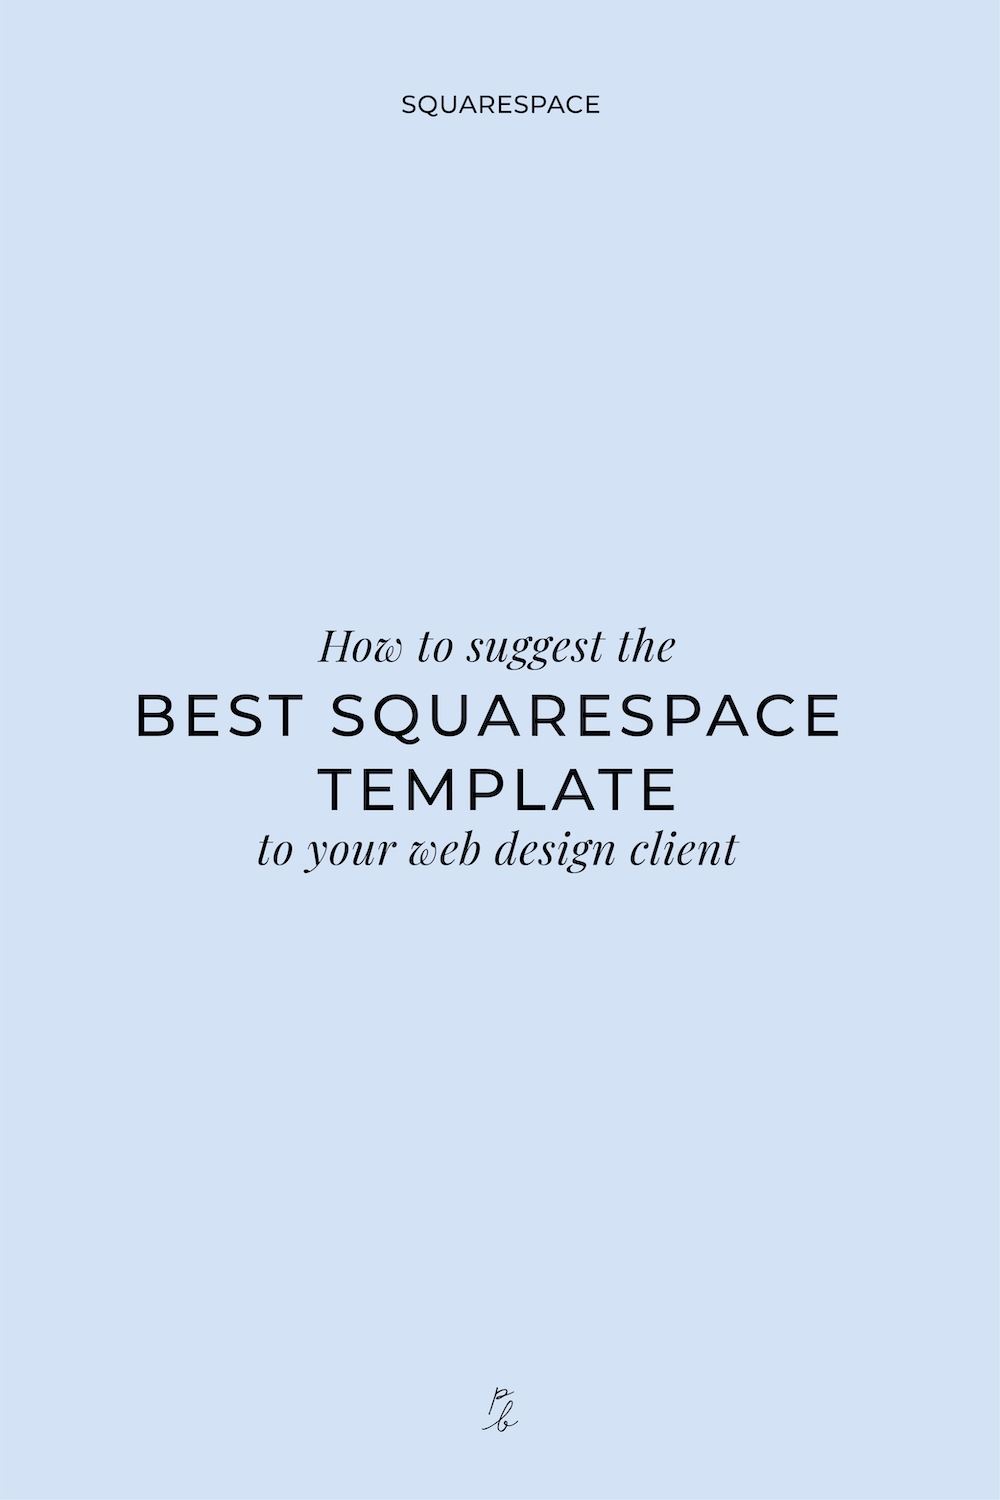 4-How to suggest the best squarespace template to your web design client.jpg